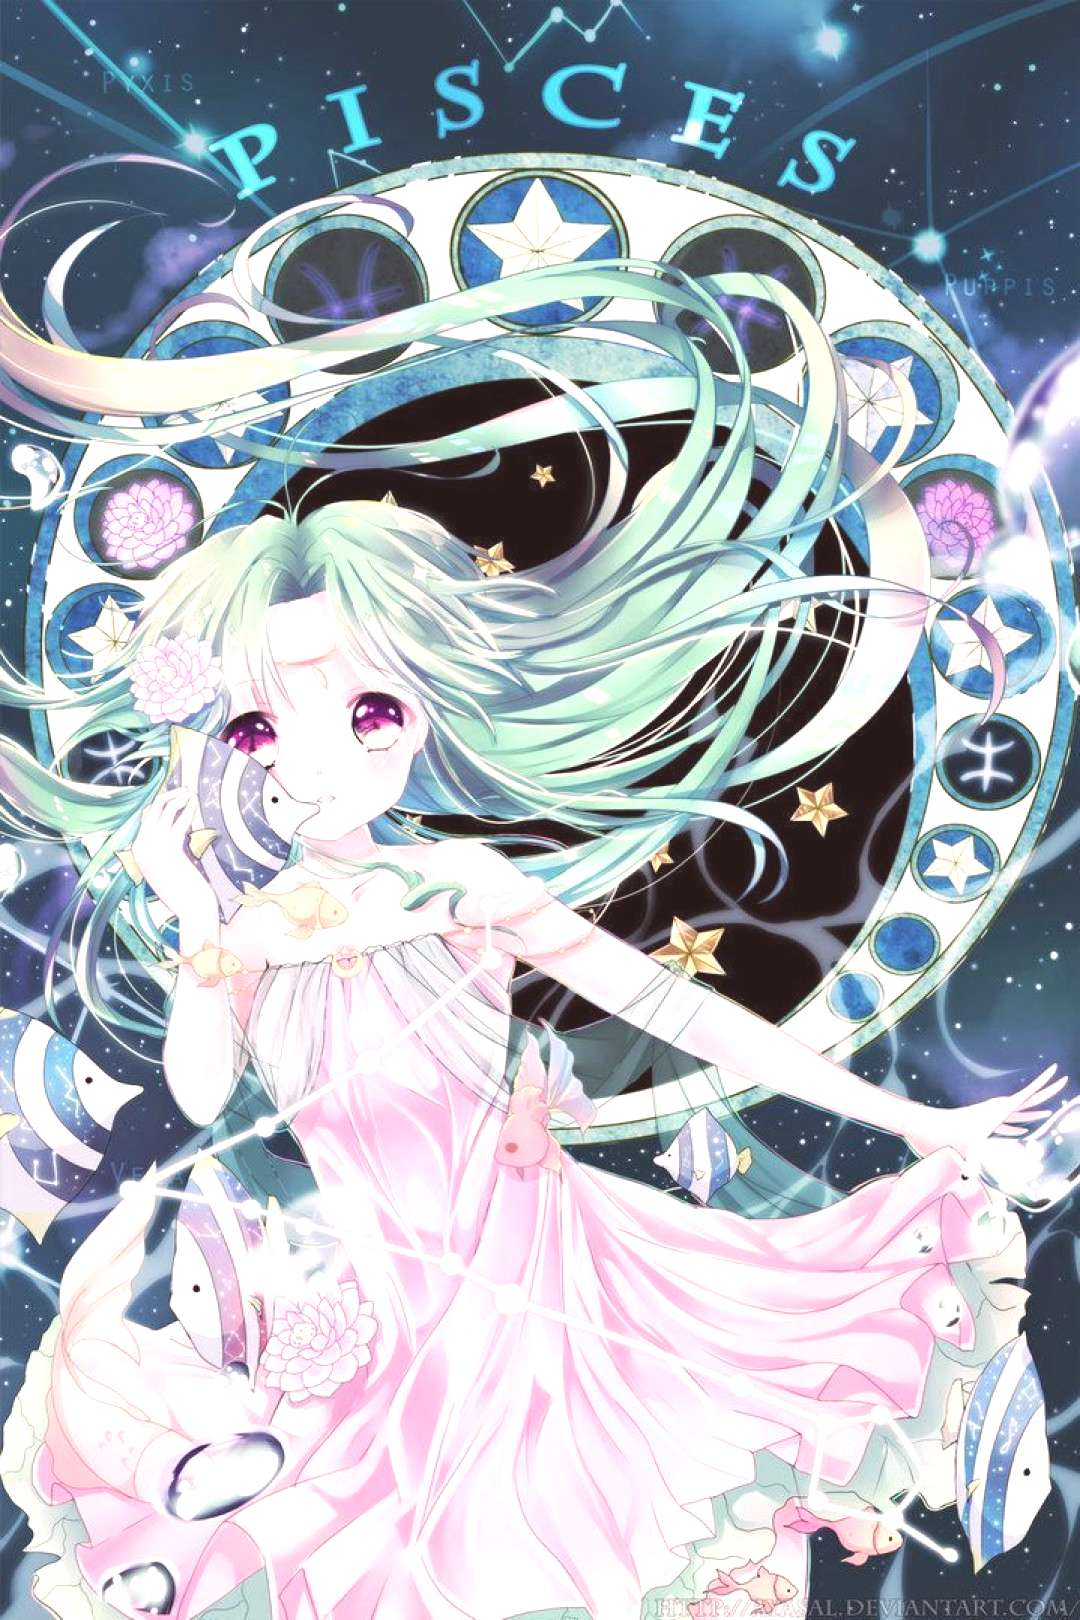 Pisces [Zodiacal Constellations] by Ayasal on DeviantArt#ayasal